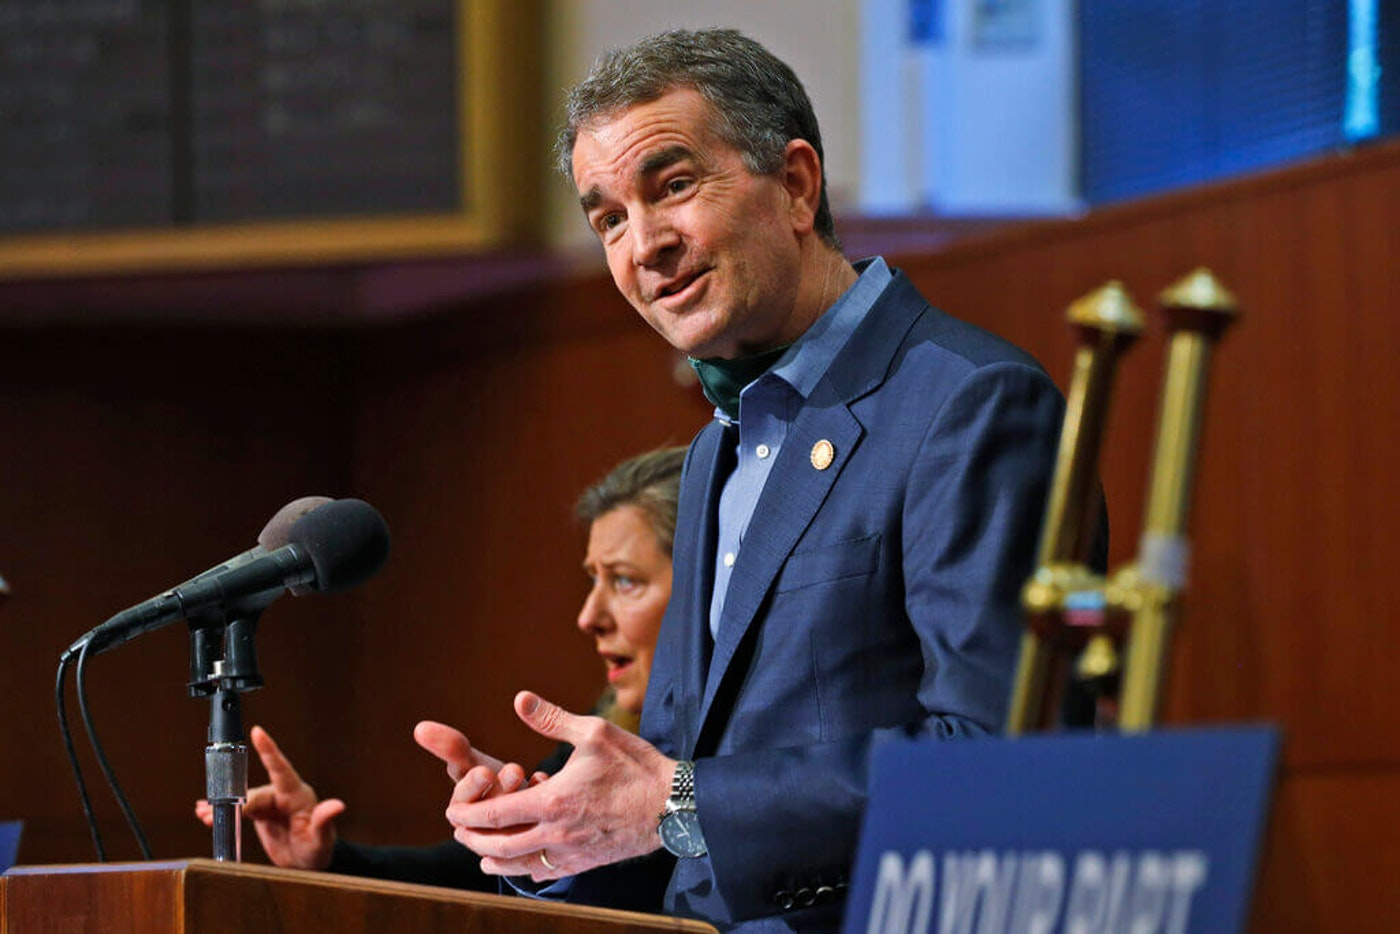 Virginia's governor comes out in support of abolishing the death penalty, legalizing marijuana, restoring felons voting rights.